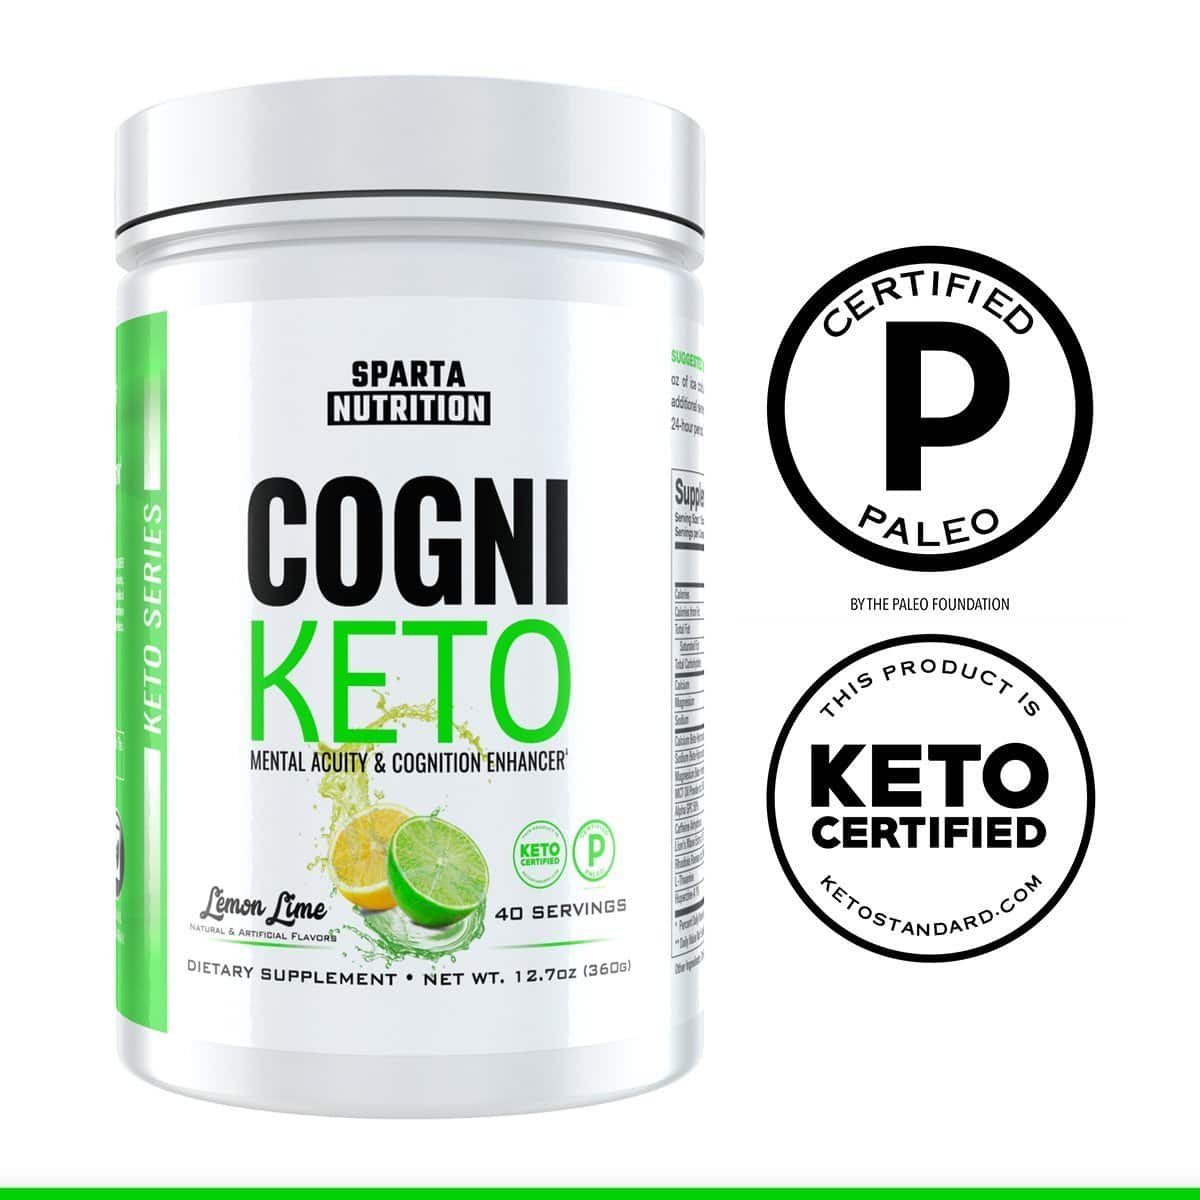 New Nootropic: CogniKeto by Sparta Nutrition, $36.99 (Normally $59.99 - $23 off Launch Sale)